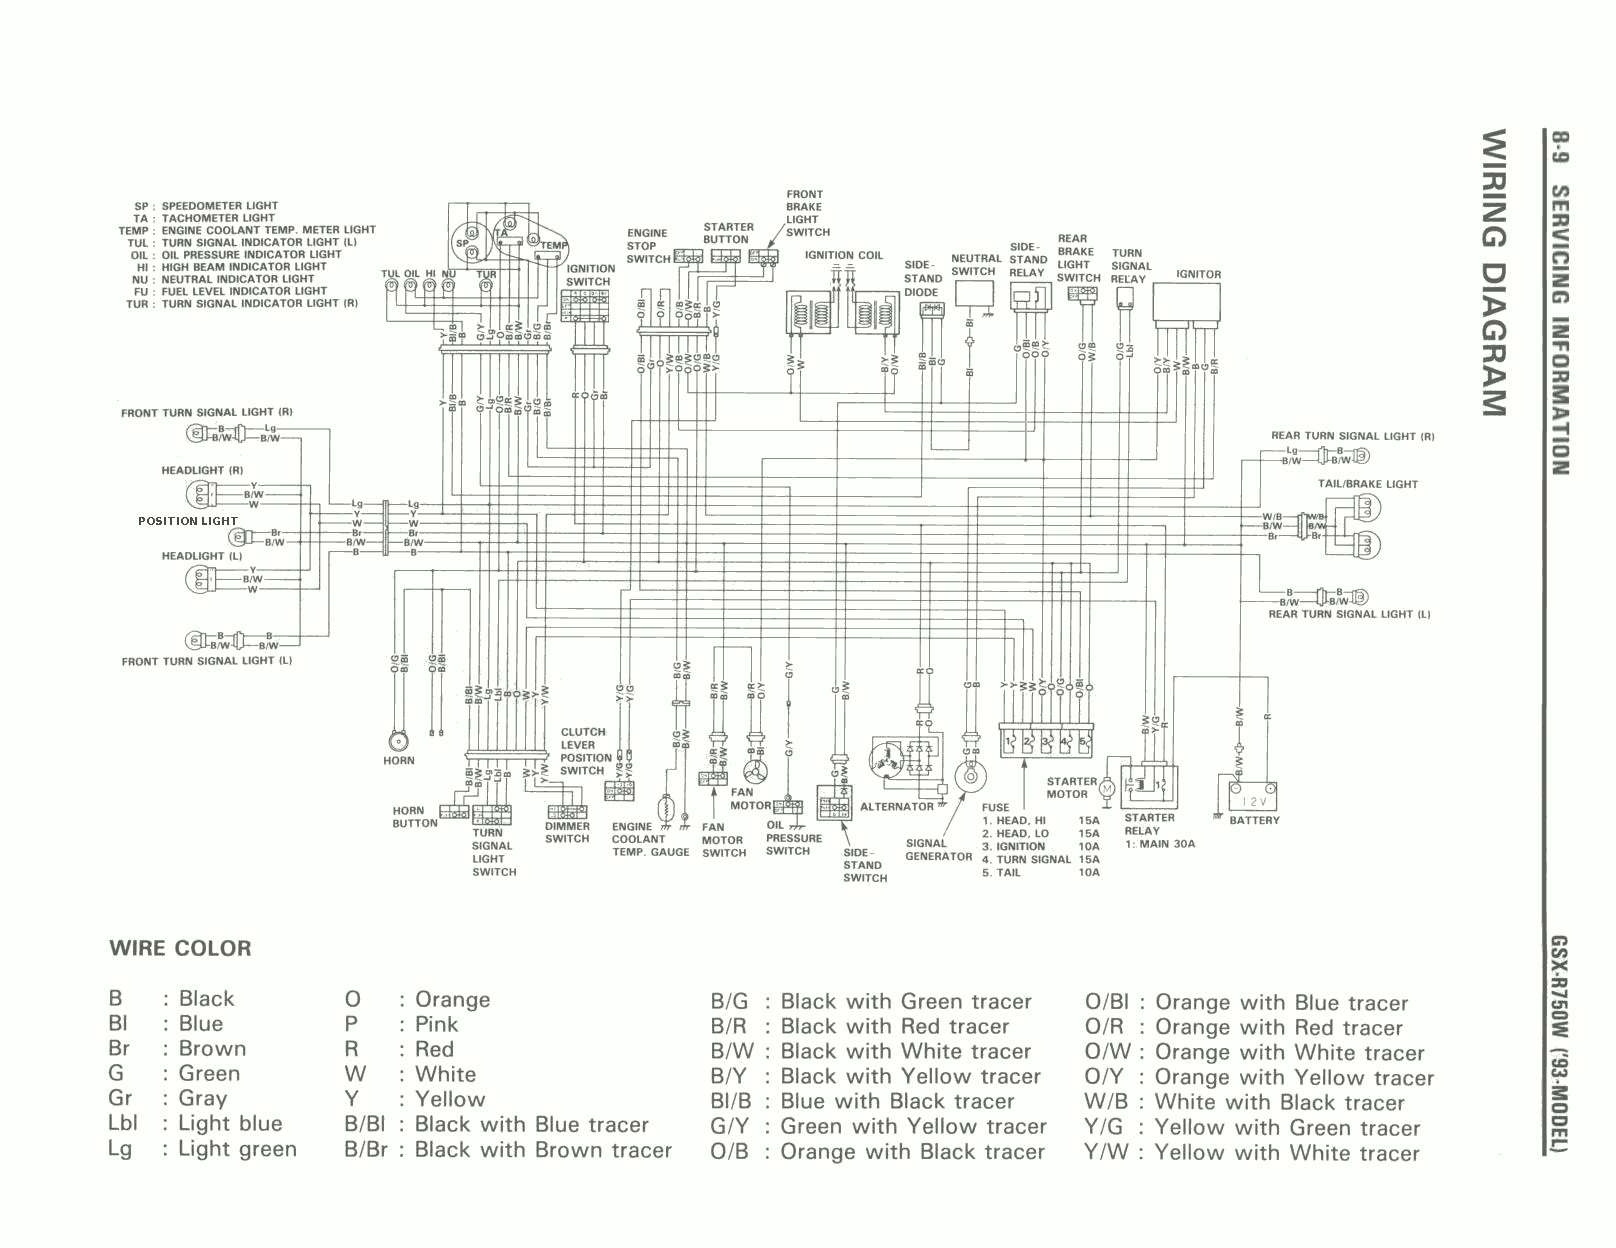 GSXR750 1993 wiring diagram?resize\\\\\\\\\\\\\\\\\\\\\\\\\\\\=665%2C514 2003 ttr 225 wiring diagram ttr 225 piston, yz 80 wiring diagram YZ450F at readyjetset.co